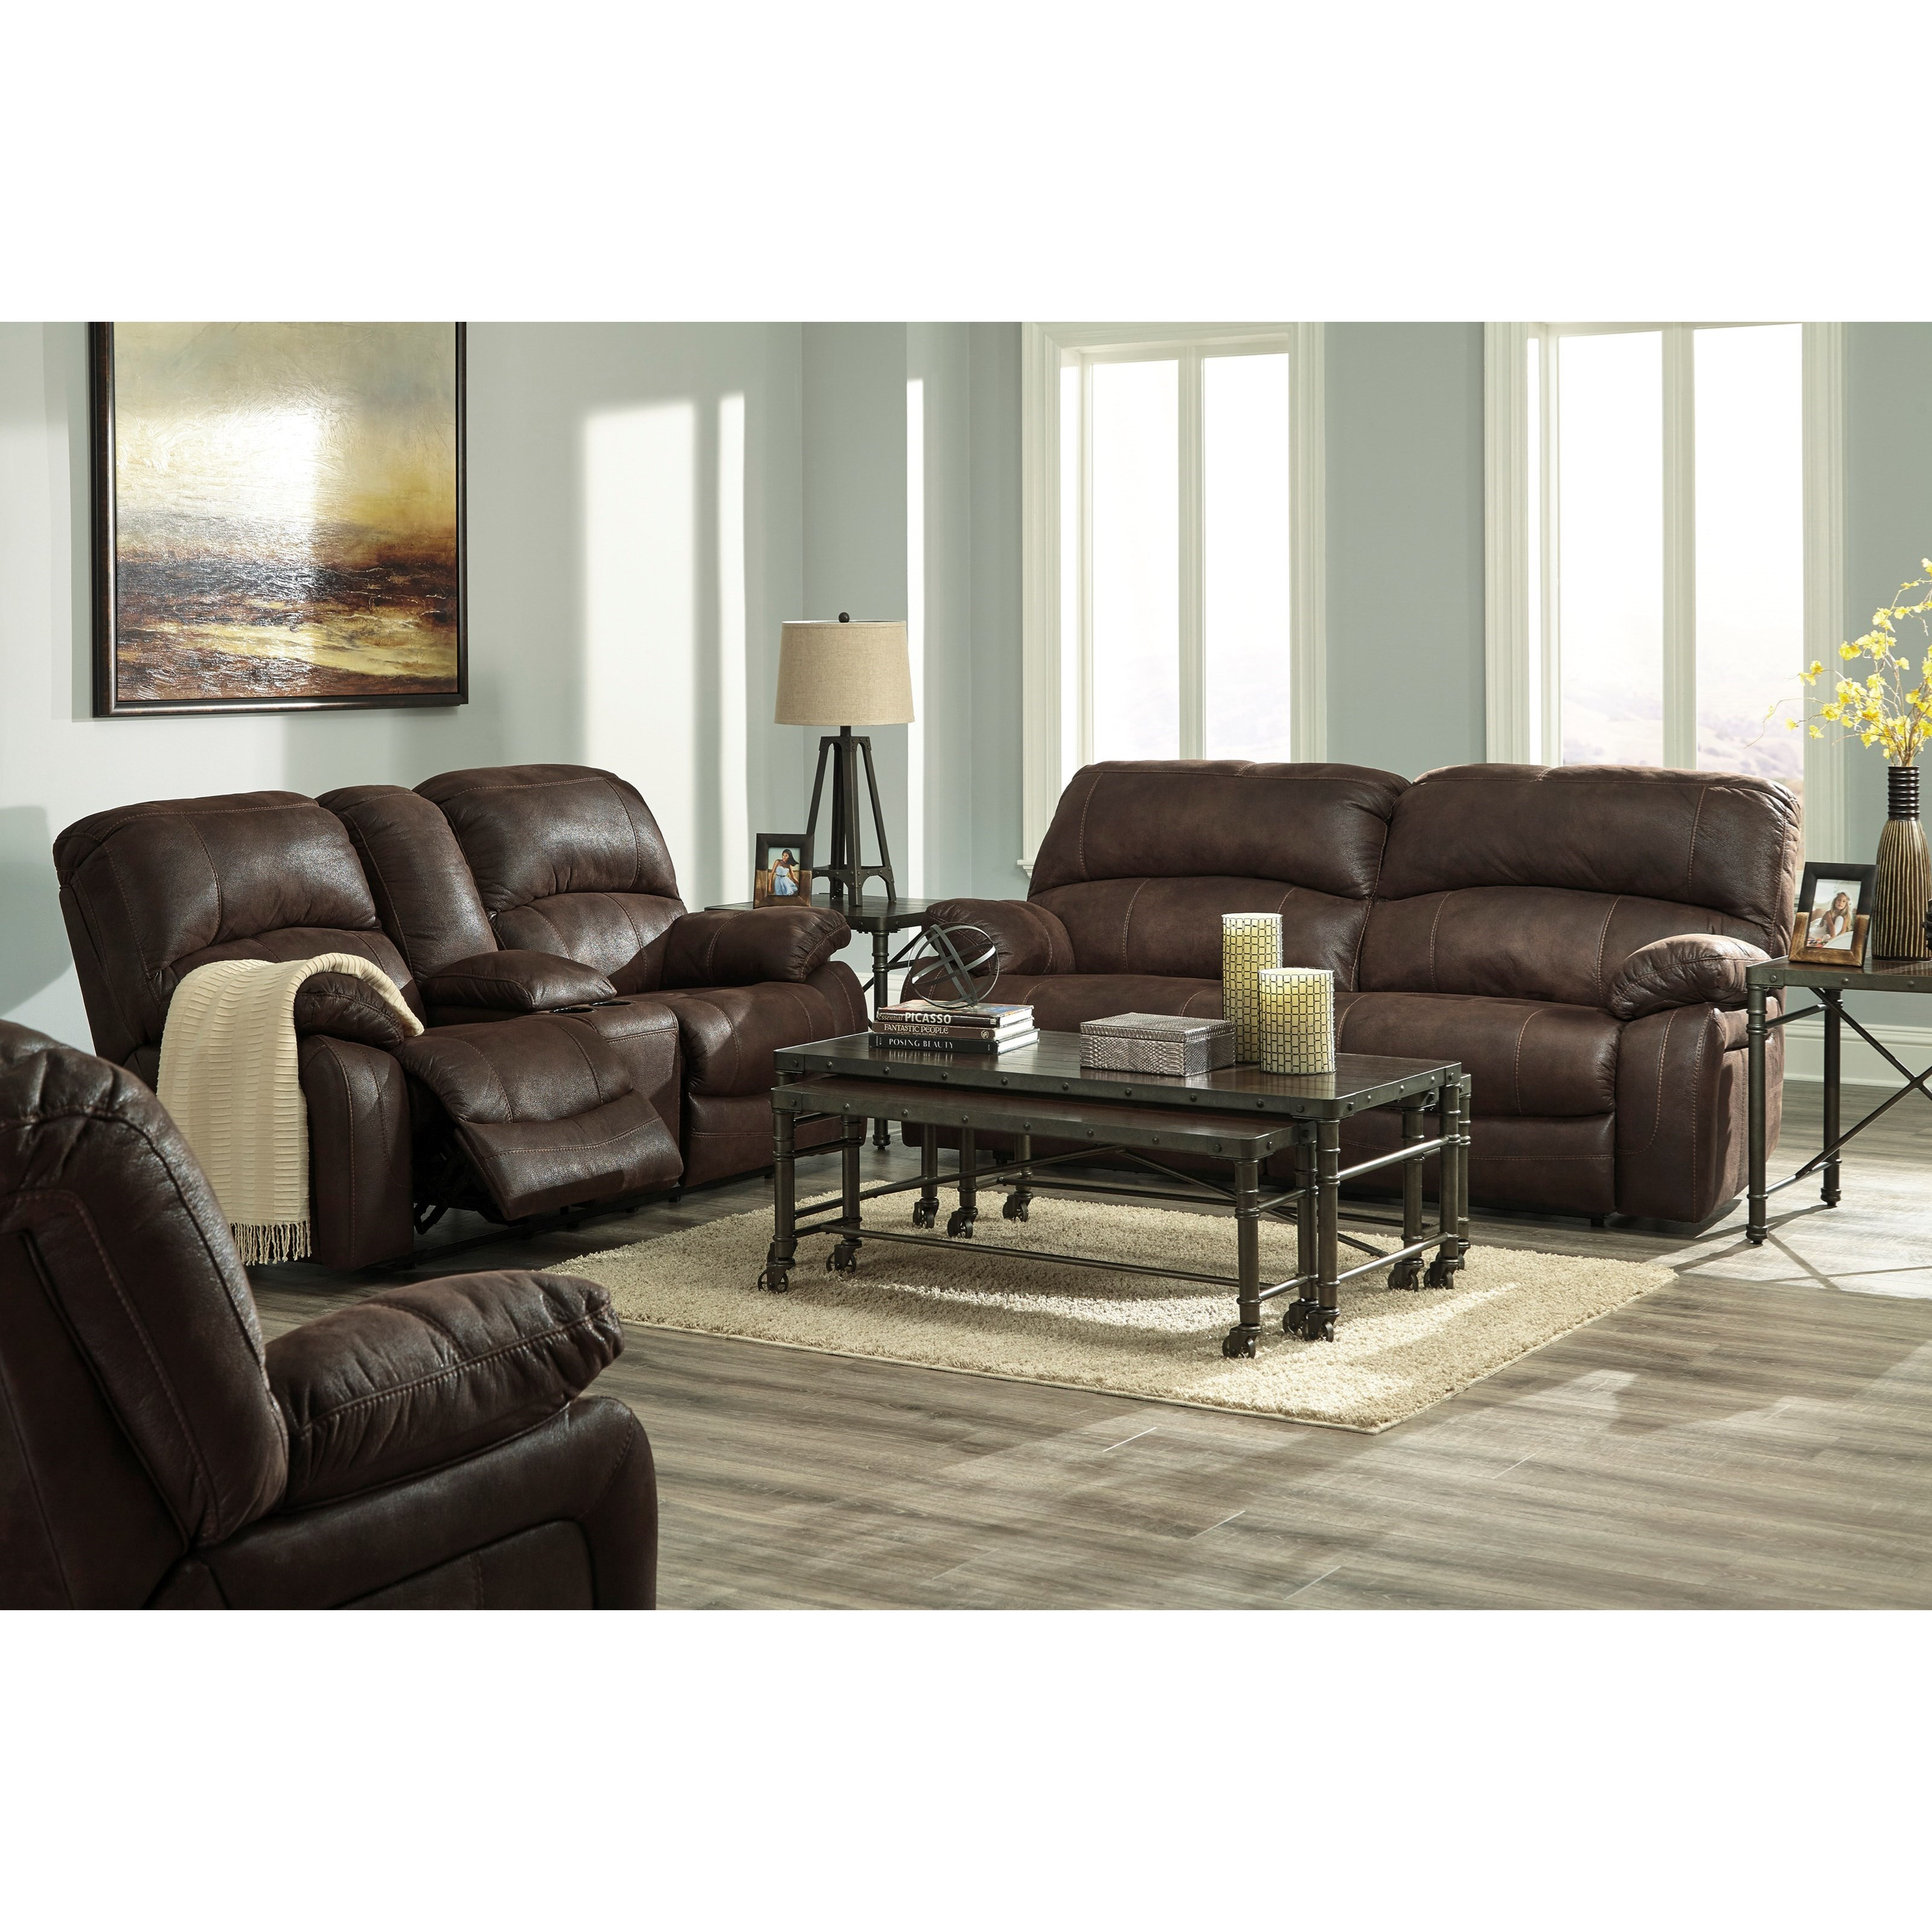 Signature Design by Ashley Zavier Power Reclining Living Room Group - Item Number: 42901 Living Room Group 4